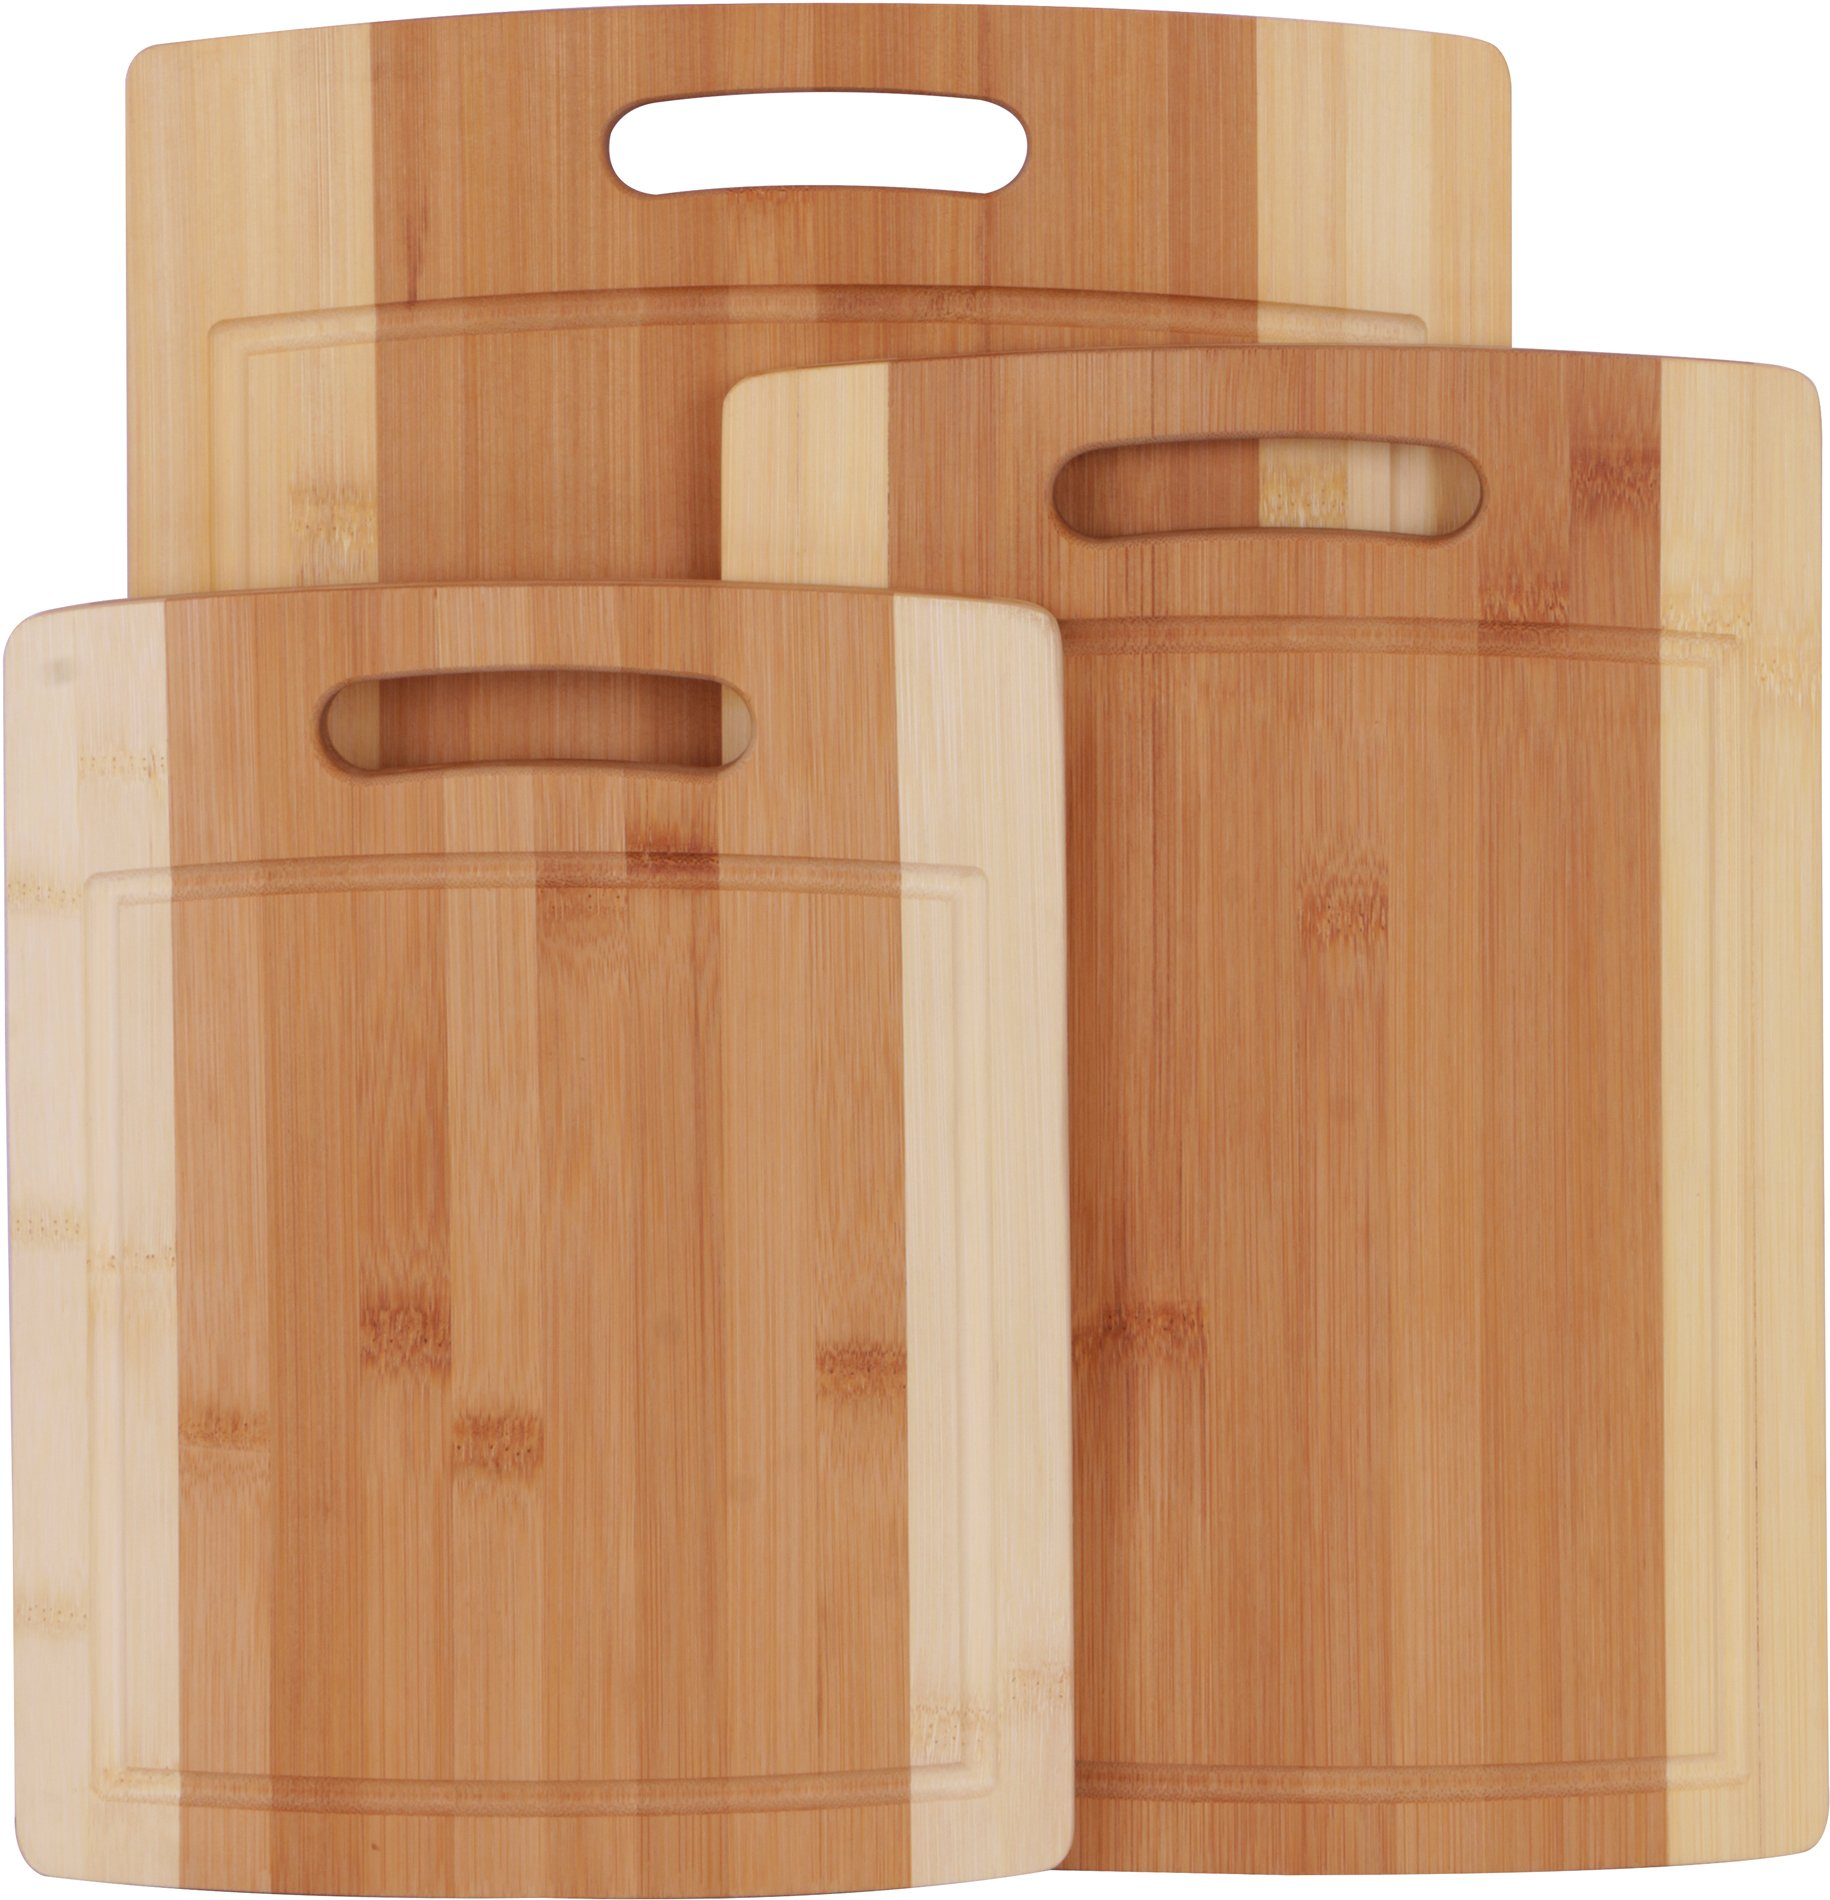 Utopia Kitchen Natural Bamboo Cutting Boards for Kitchen with Juice Groove Wooden Cutting Board Set of 3 - Chopping Boards for Vegetable, Fruits, Meat and Cheese by Utopia Kitchen (Image #7)